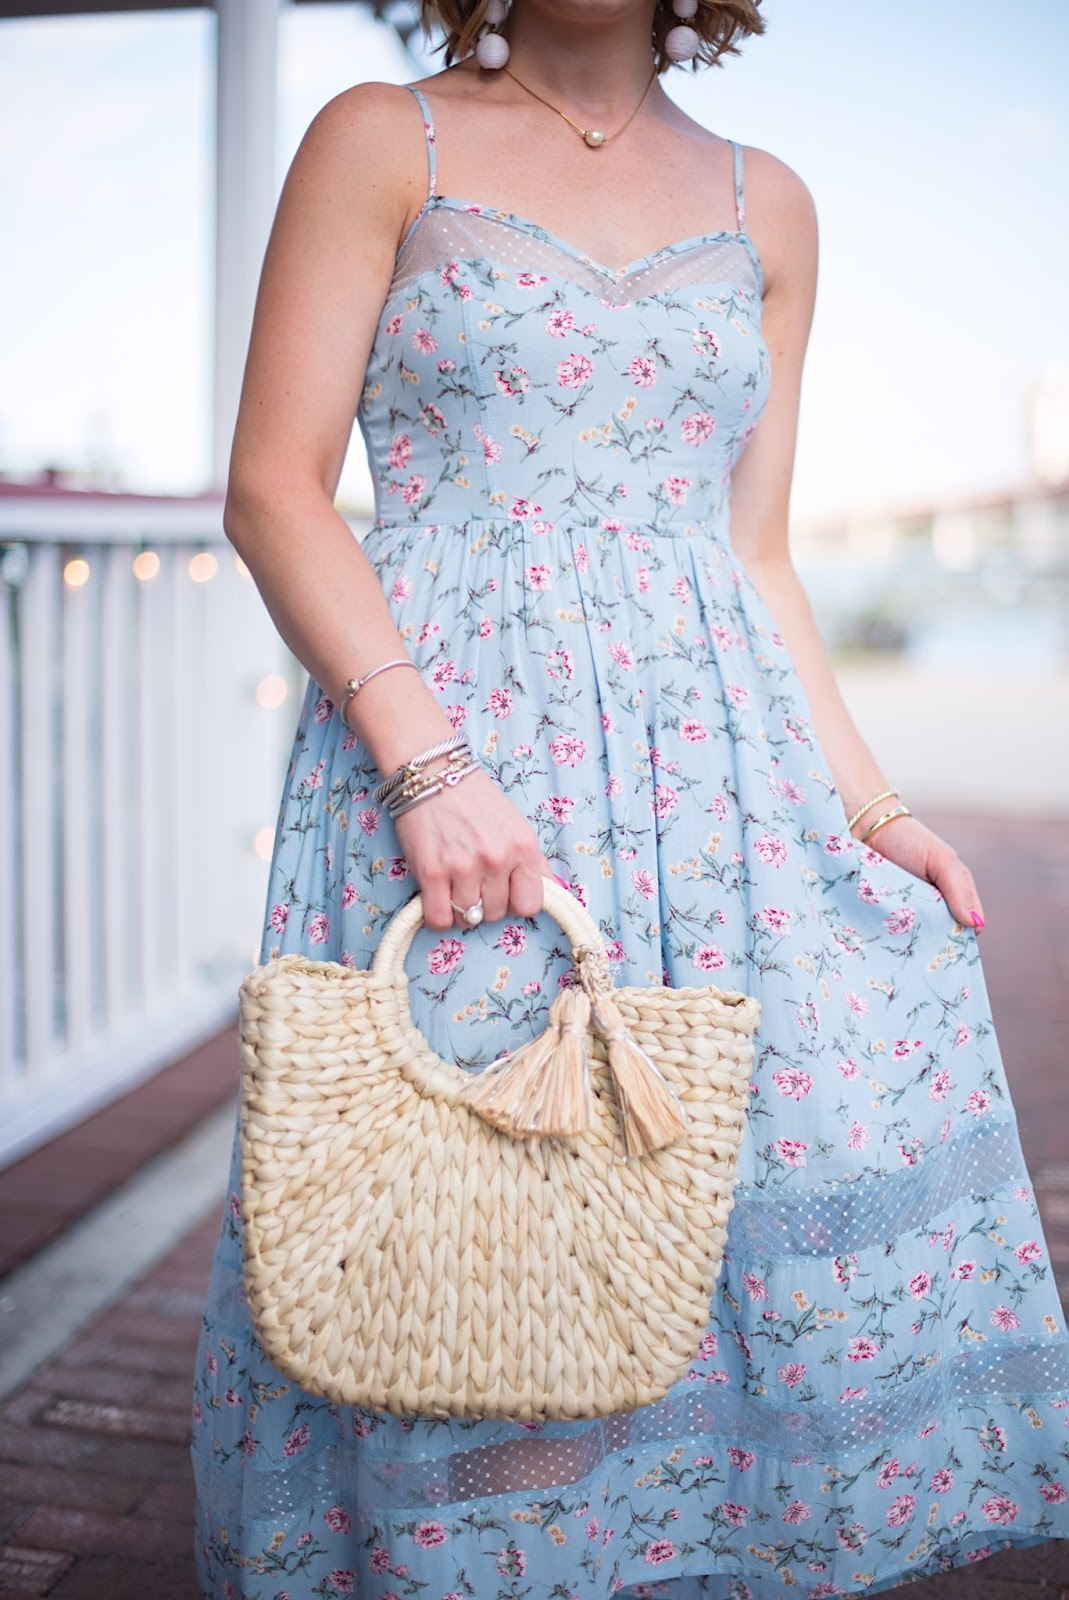 Hat Attack Straw Bag - Click through to see more on Something Delightful Blog!